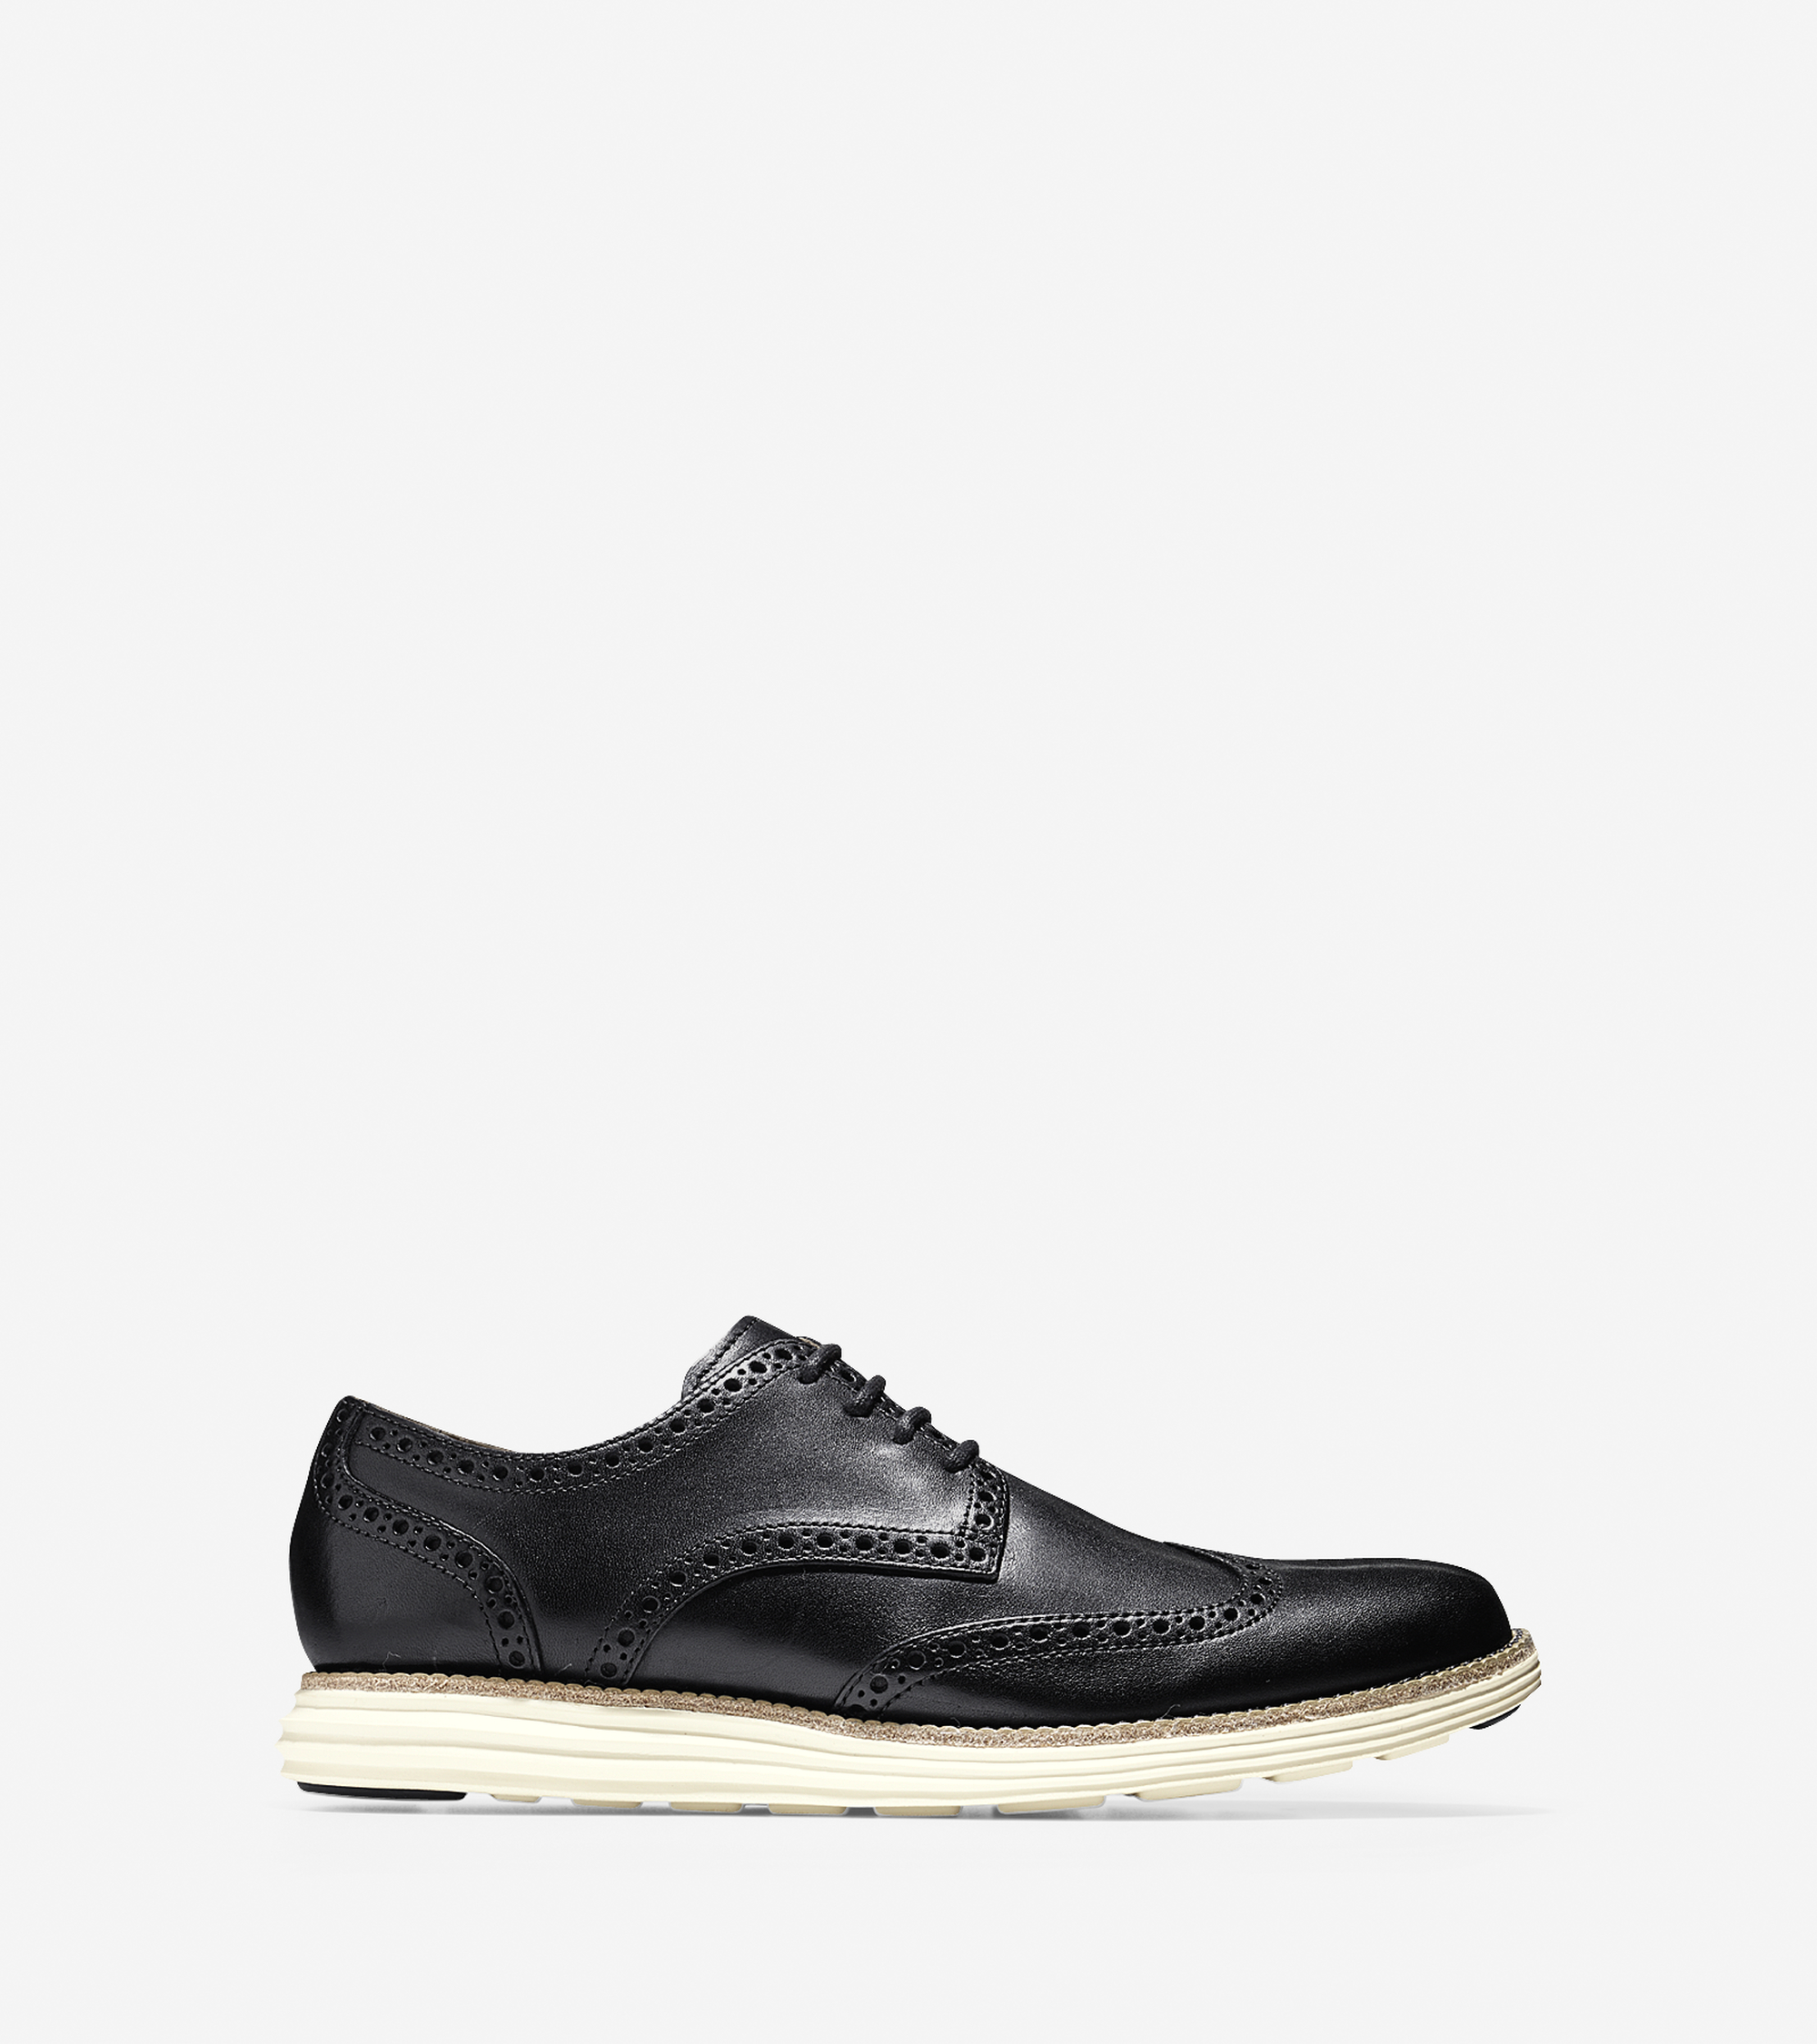 Black Cole Haan Lunargrand September 2017